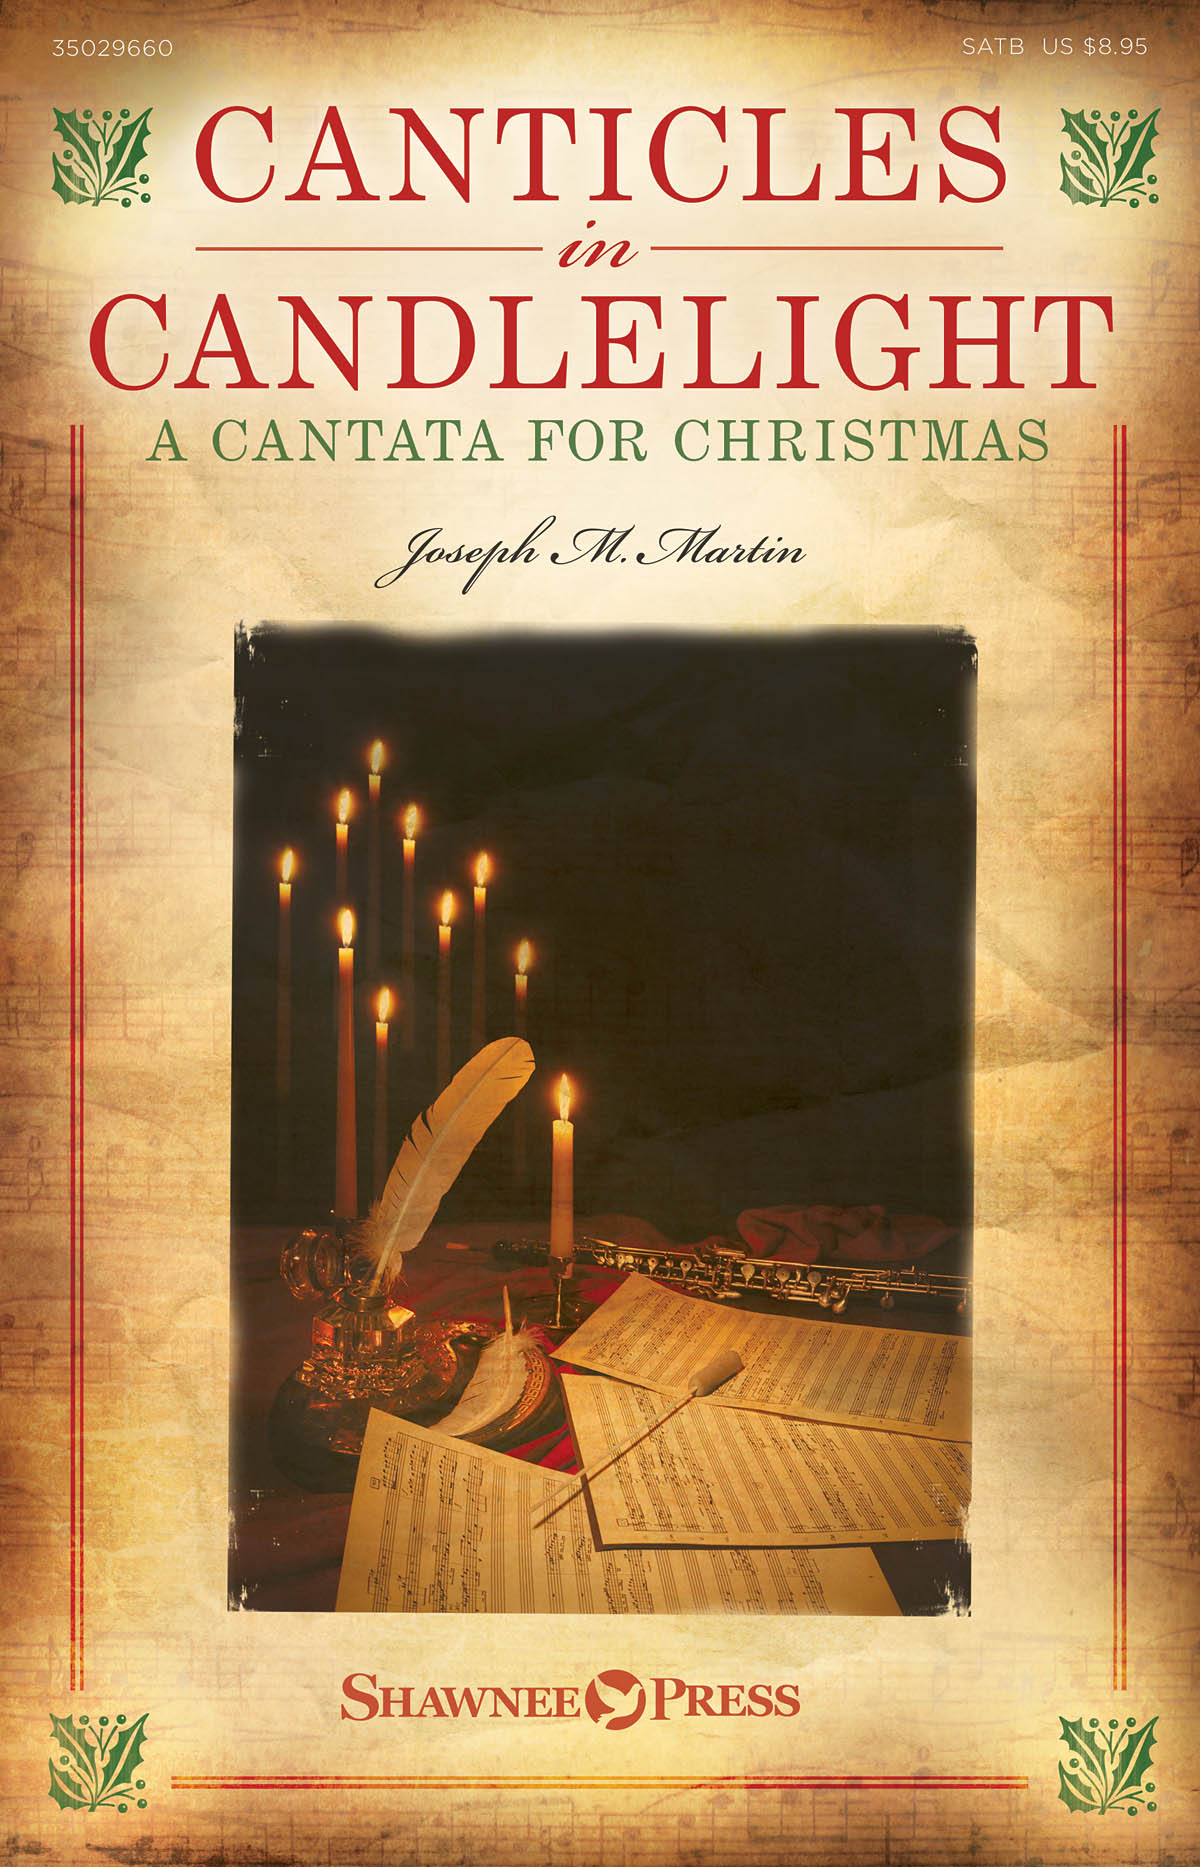 Joseph M. Martin: Canticles in Candlelight: SATB: Vocal Score